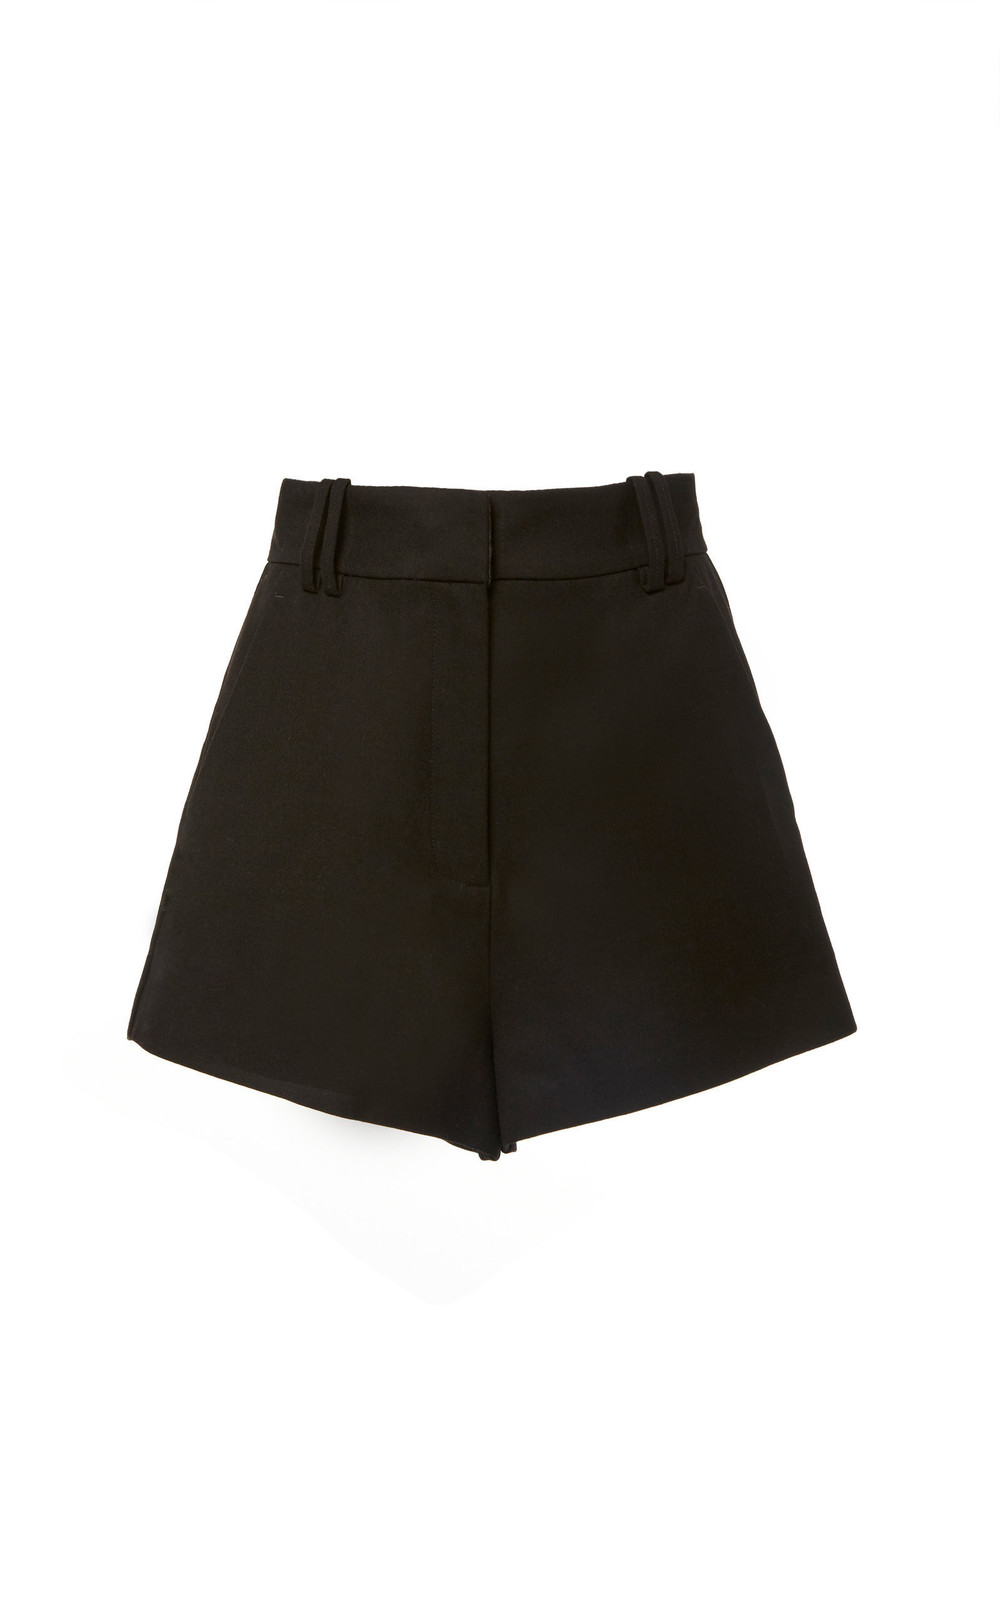 Acler Davidson Short in black